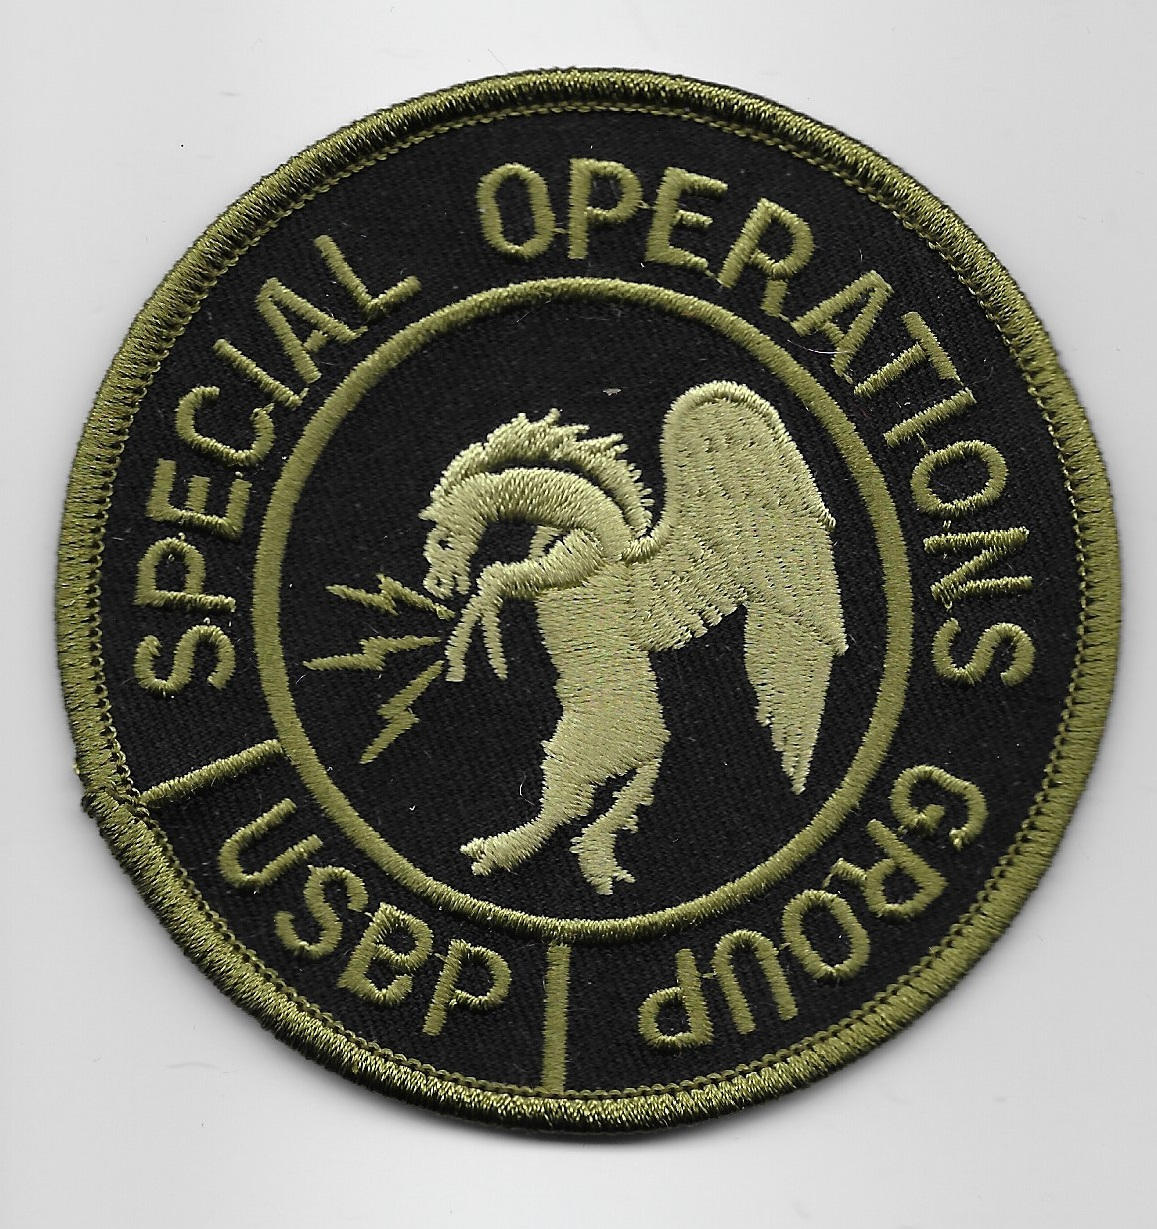 USBP Special OPS GREEN